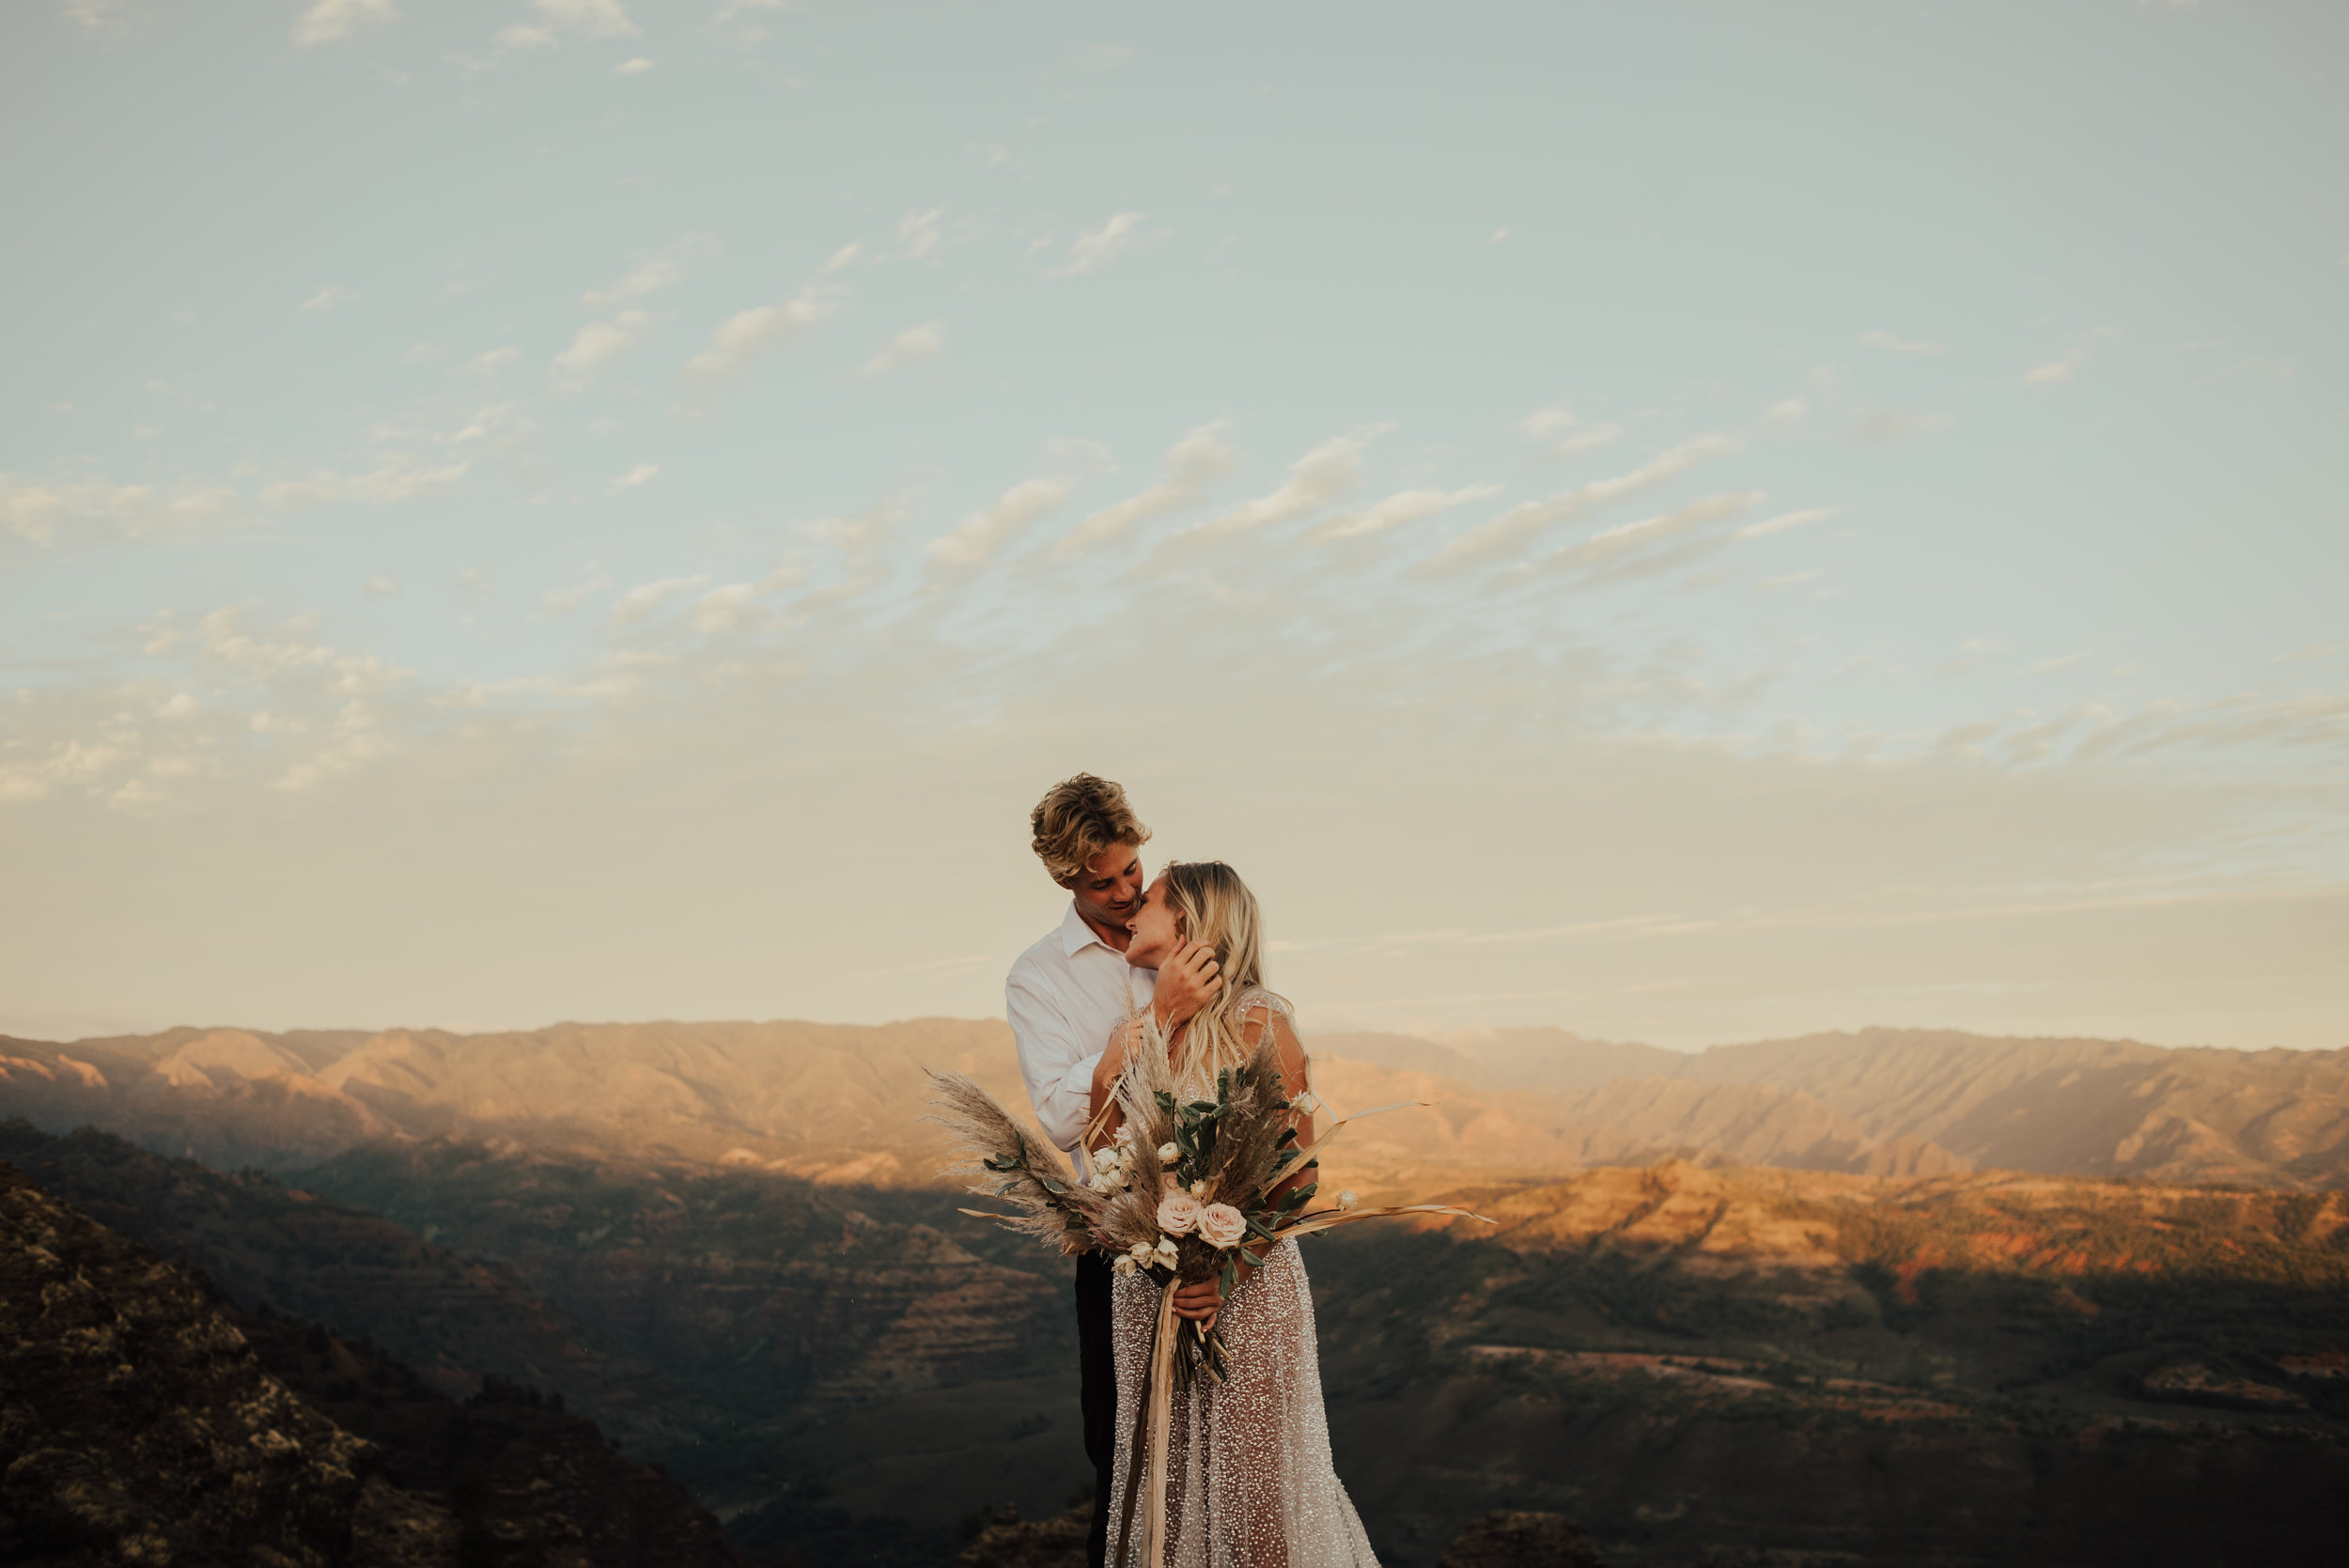 Waimea Canyon Elopement by SB Photographs01101001000111001110110110100100100001101001DSC_6920DSC_69200001101.jpg